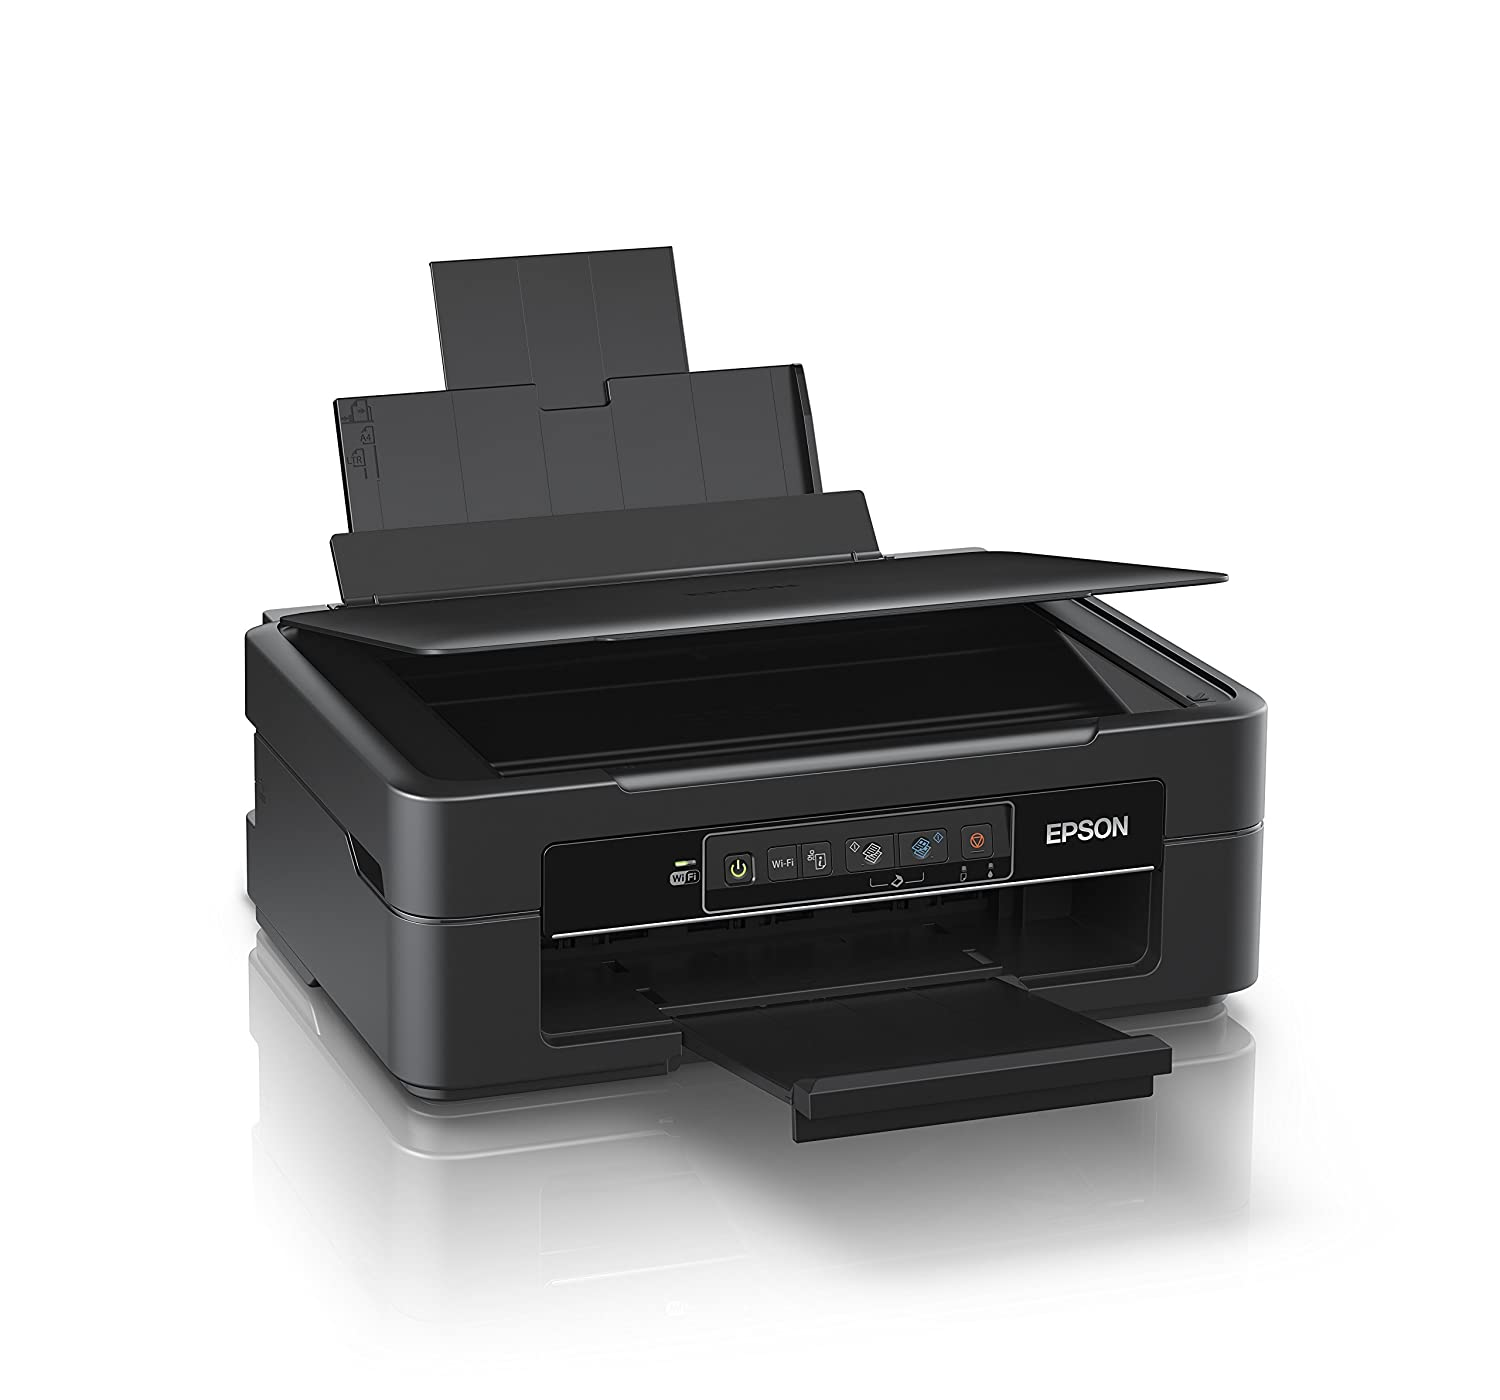 Epson Expression Home XP-245 Wi-Fi Printer, Scan and Copy (Old Model)